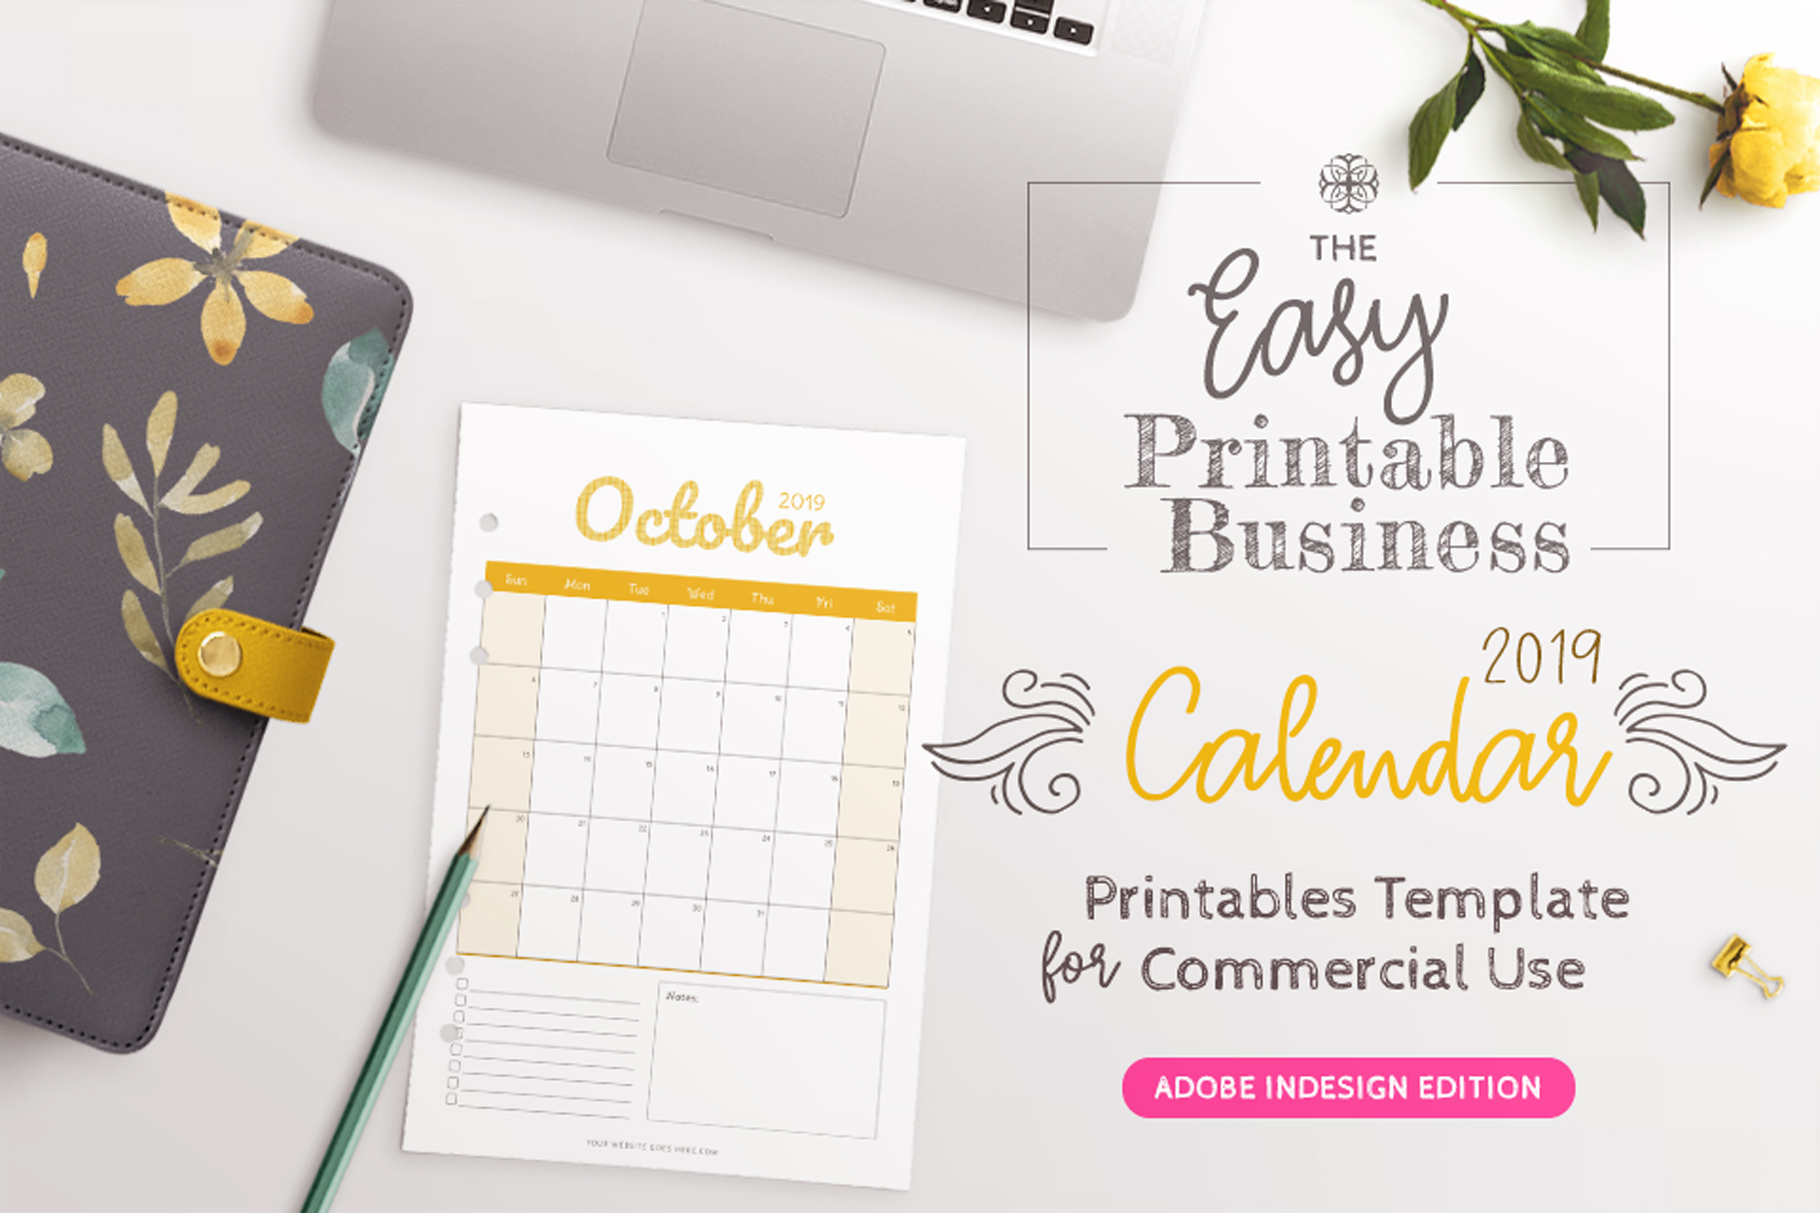 2019 Calendar InDesign Template for Commercial Use example image 2